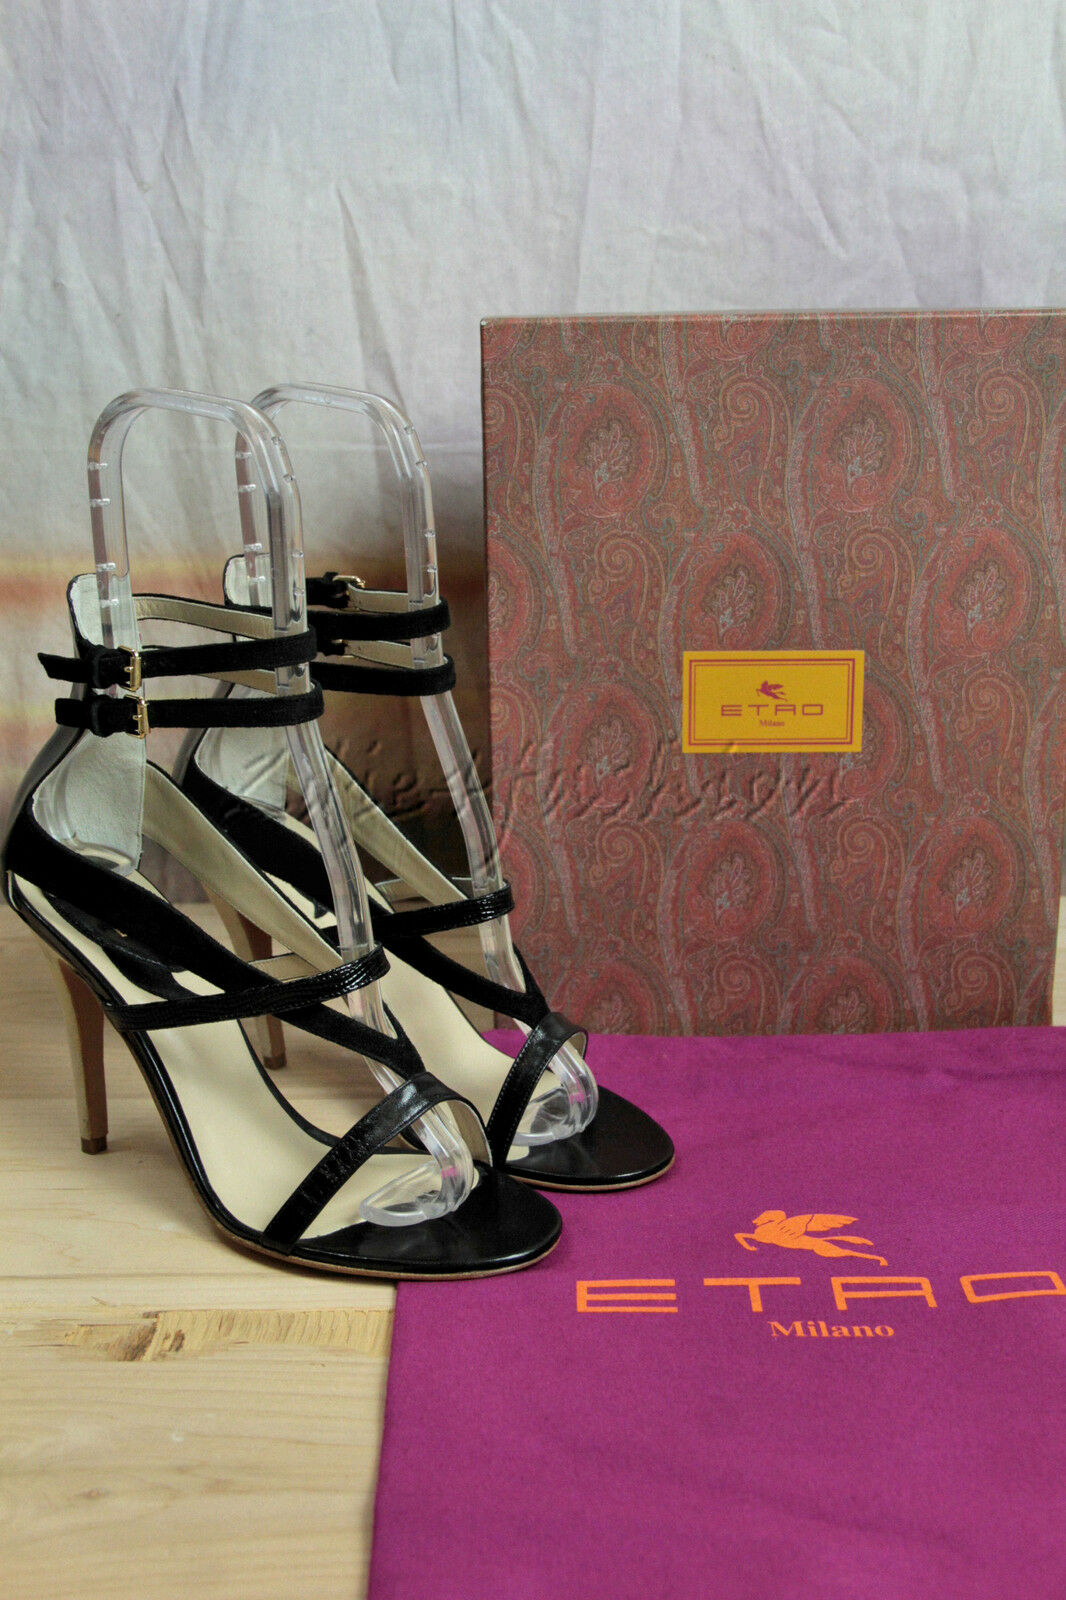 New in Box ETRO ETRO ETRO Black Suede Leather Strappy Heels shoes 38 8 506dd5